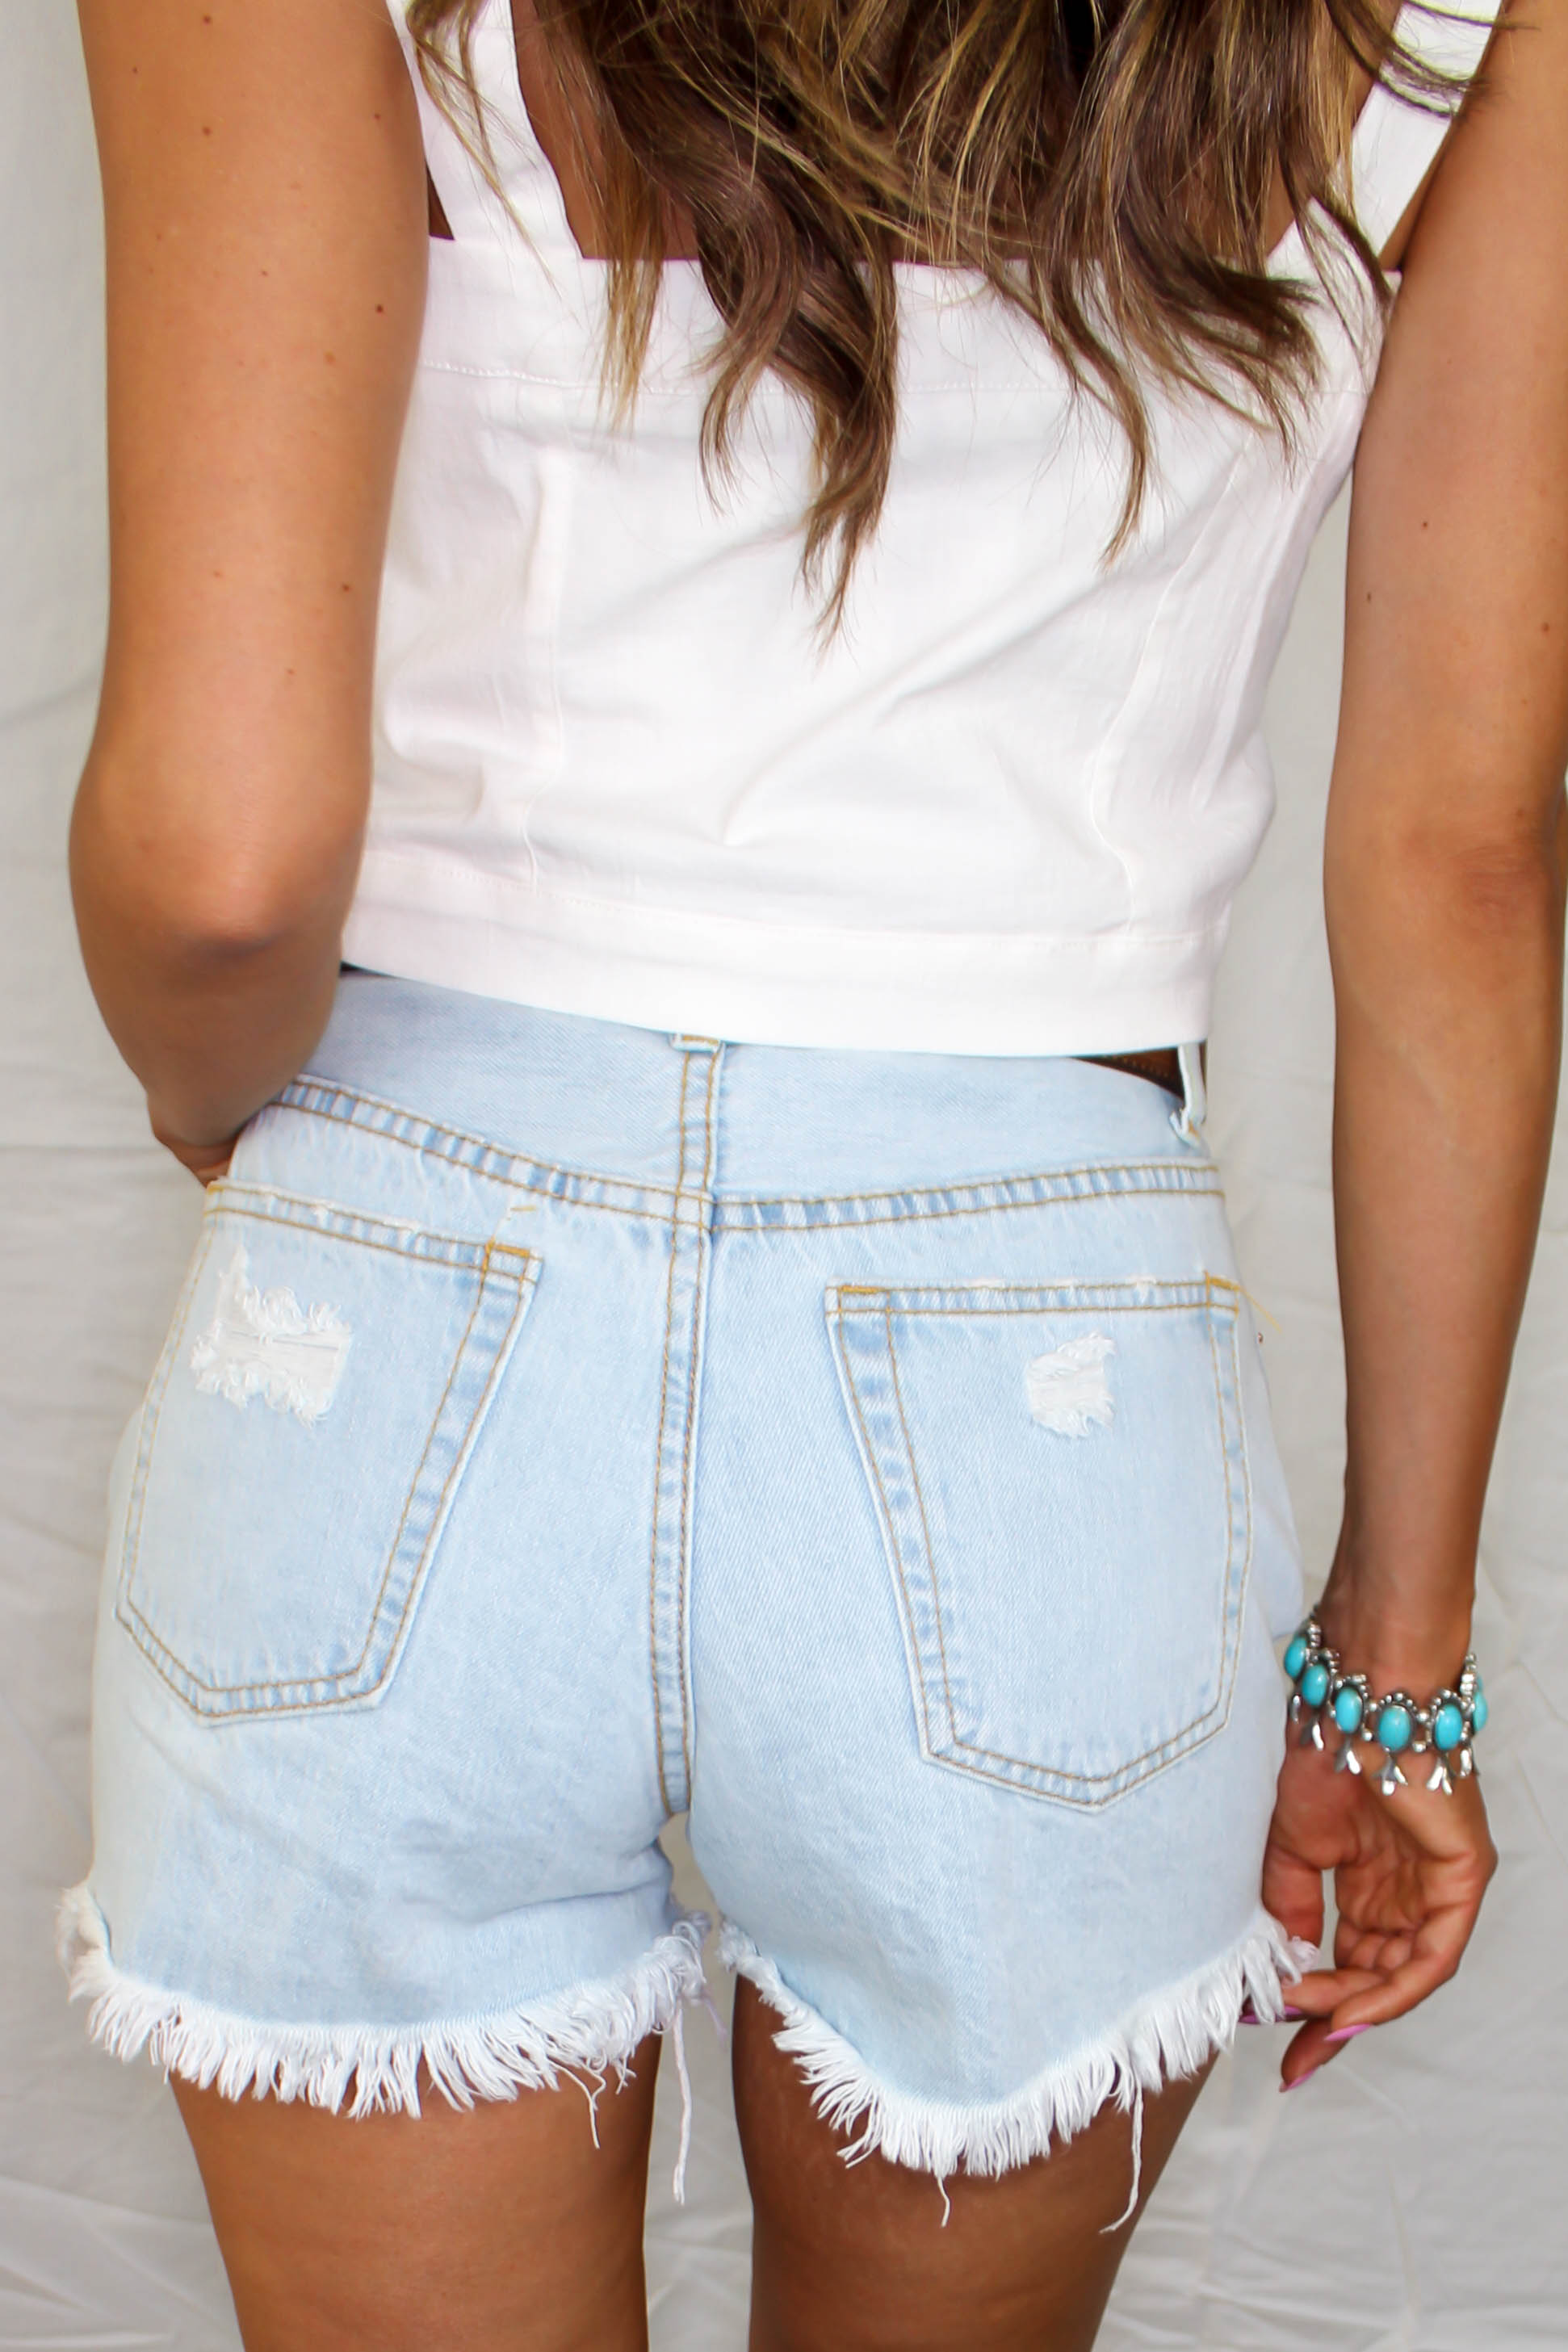 Guana Cay Denim Shorts